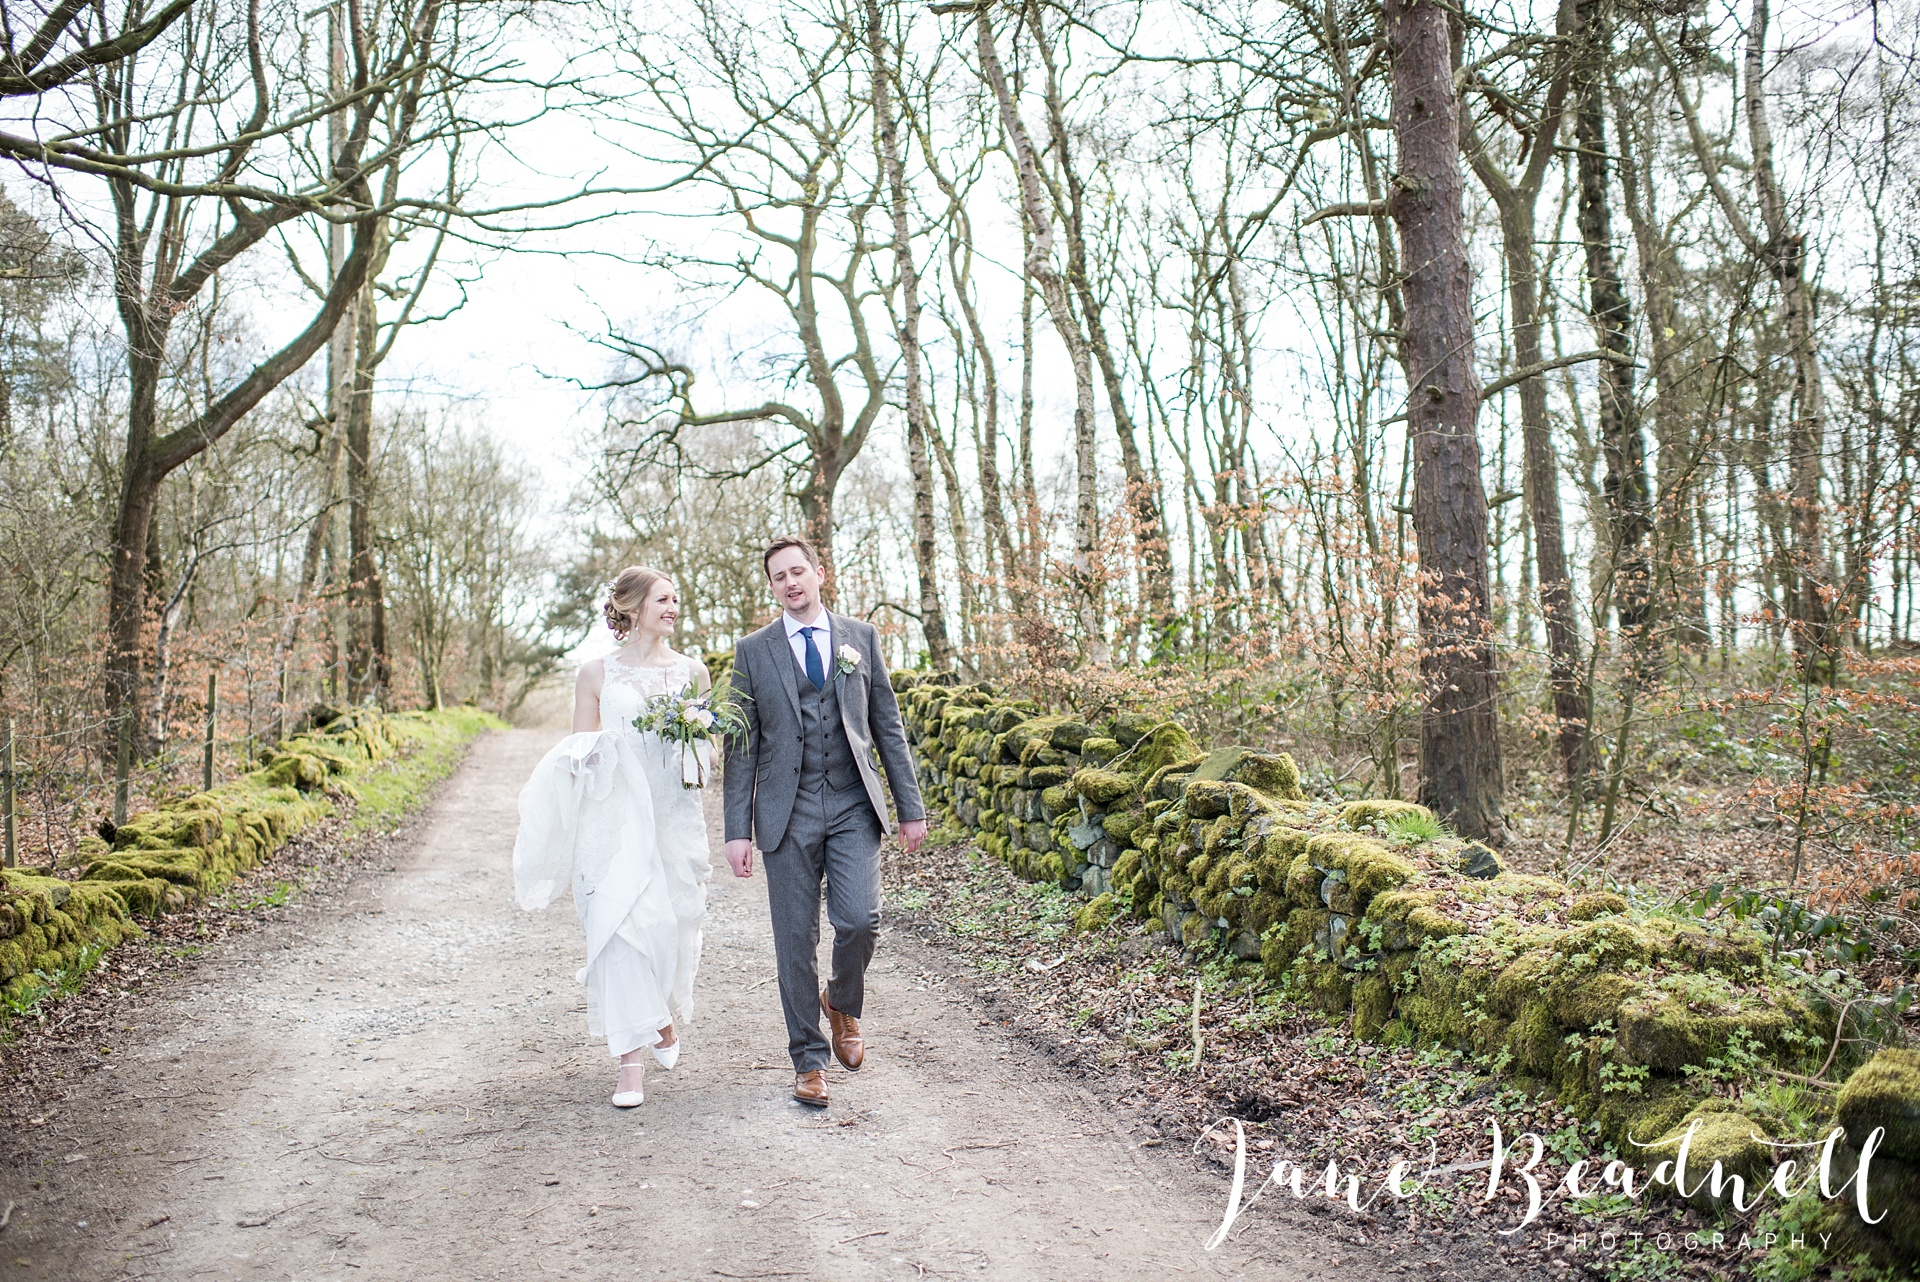 Otley Chevin Lodge wedding photography by Jane Beadnell Photography Leeds_0116